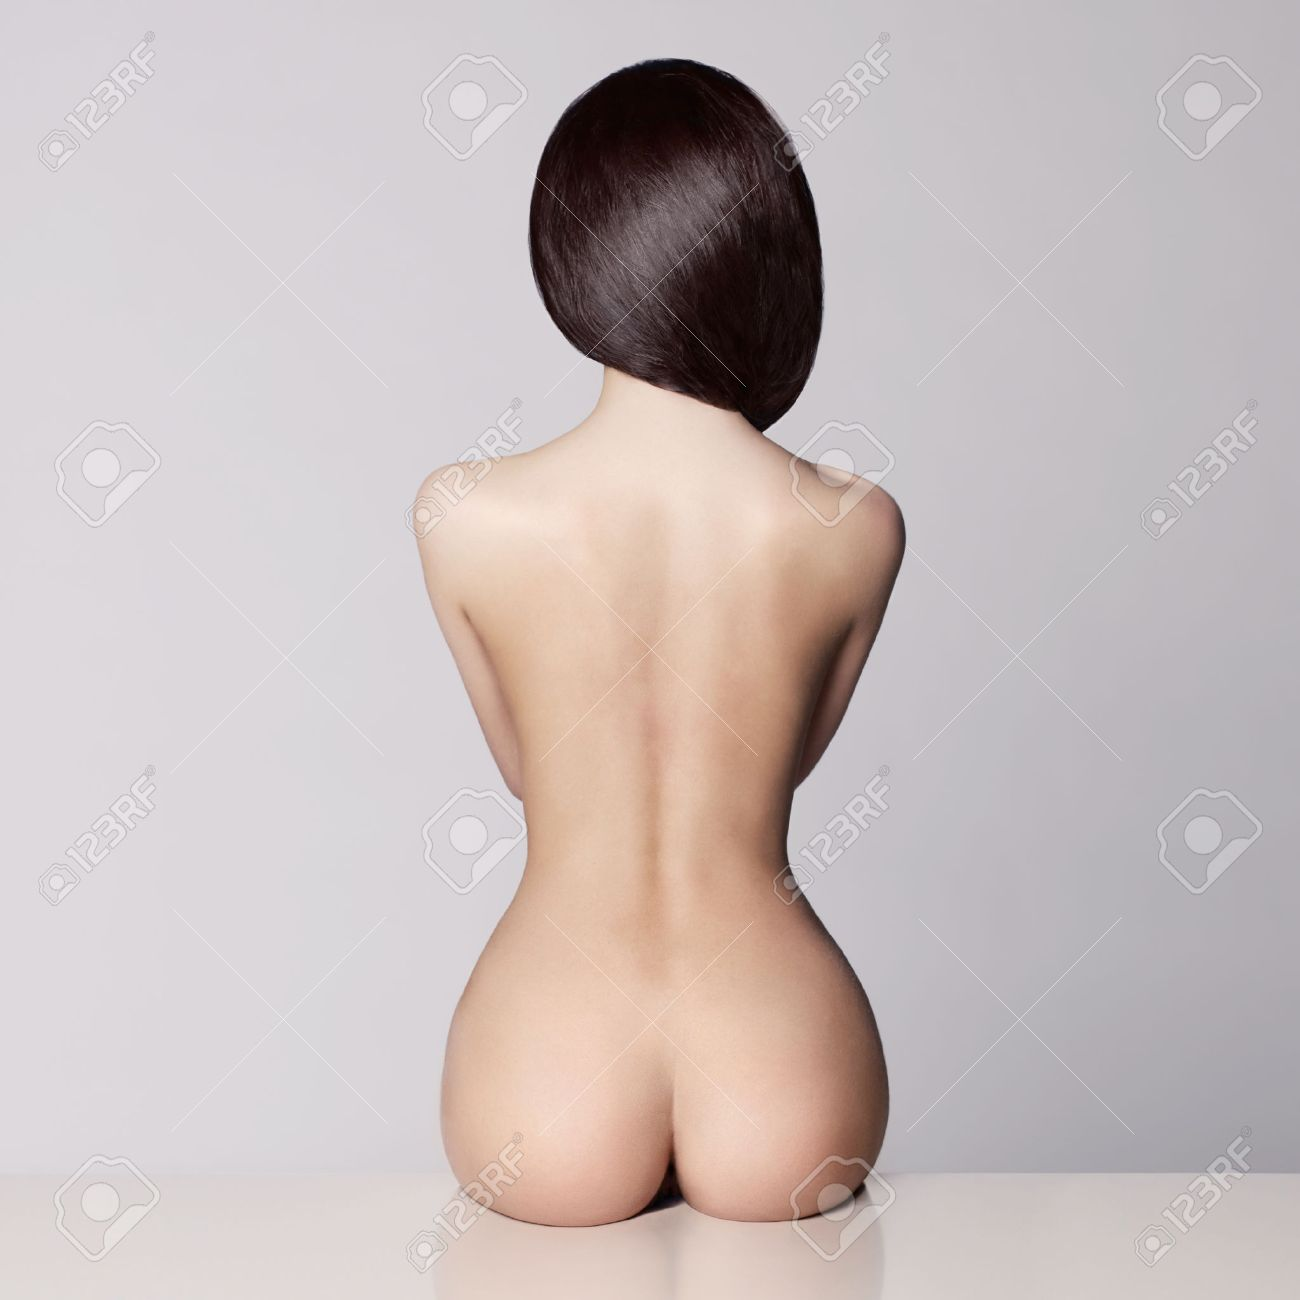 perfect female body with beautiful nude booty Standard-Bild - 37788607